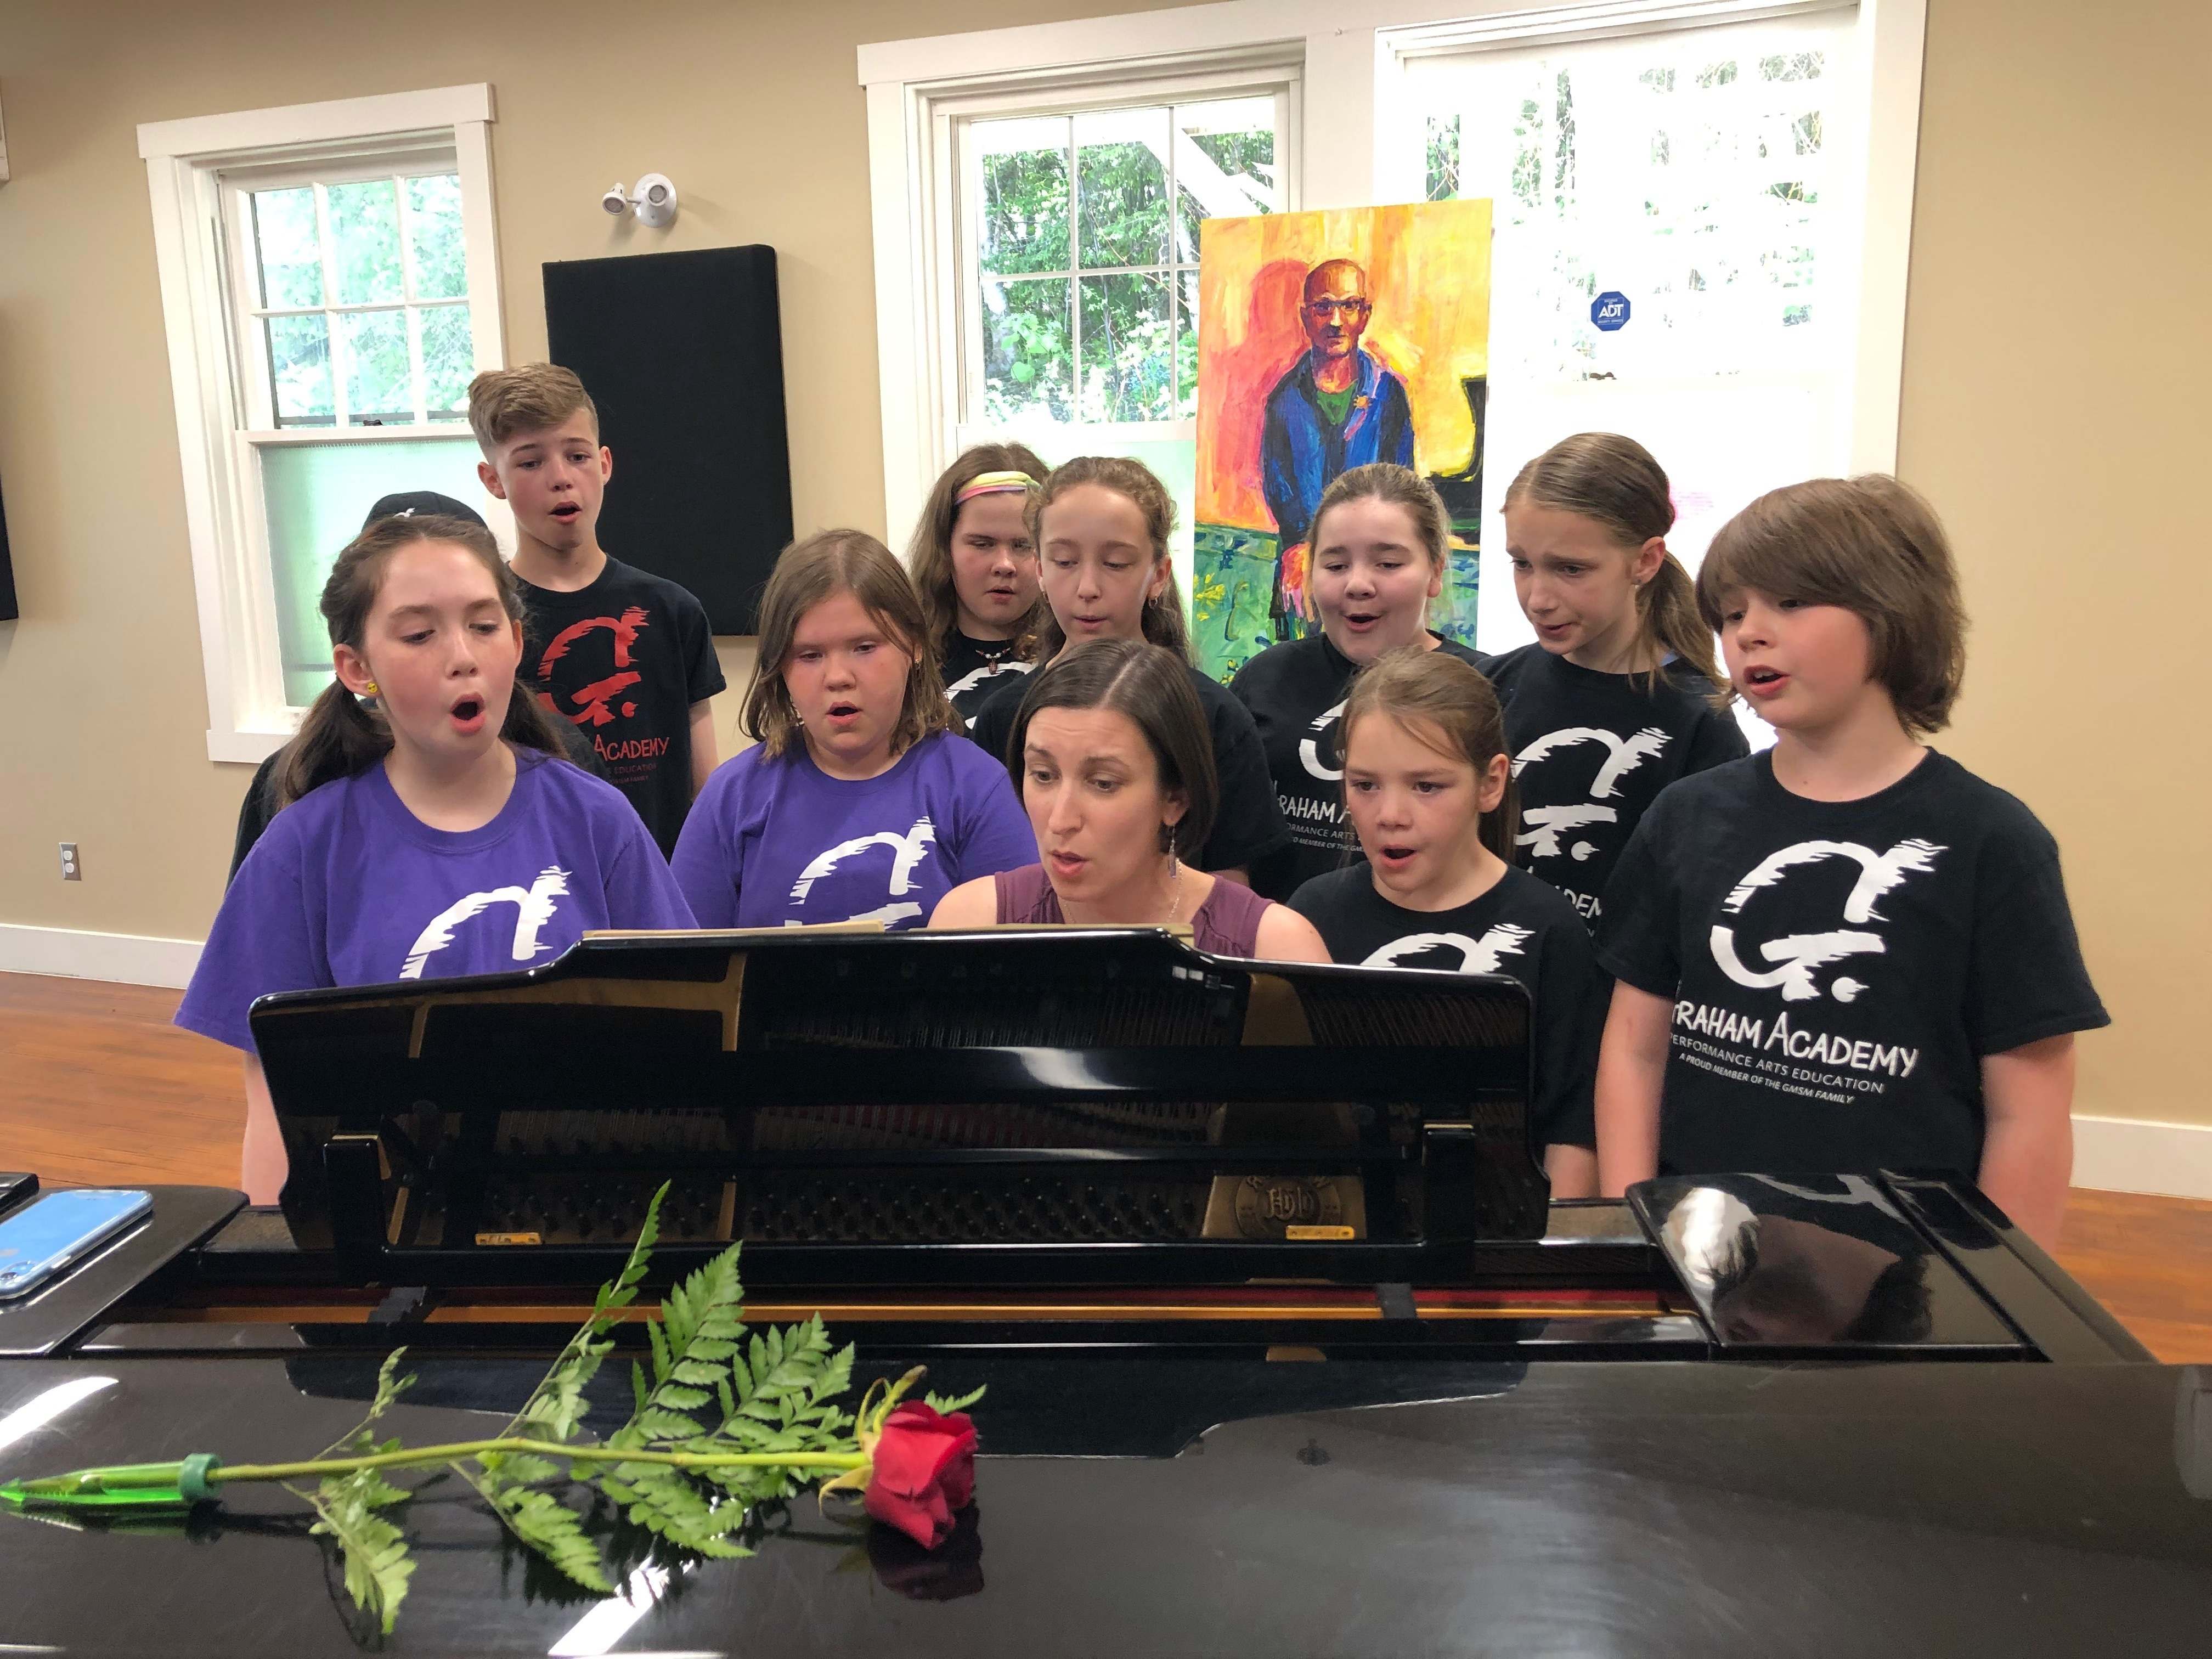 Students of the Graham Academy sing a song with choral instructor Jennifer Stratton-Renouf, as the memorial portrait of Gary Graham hangs in the background. (Jen White/CBC)